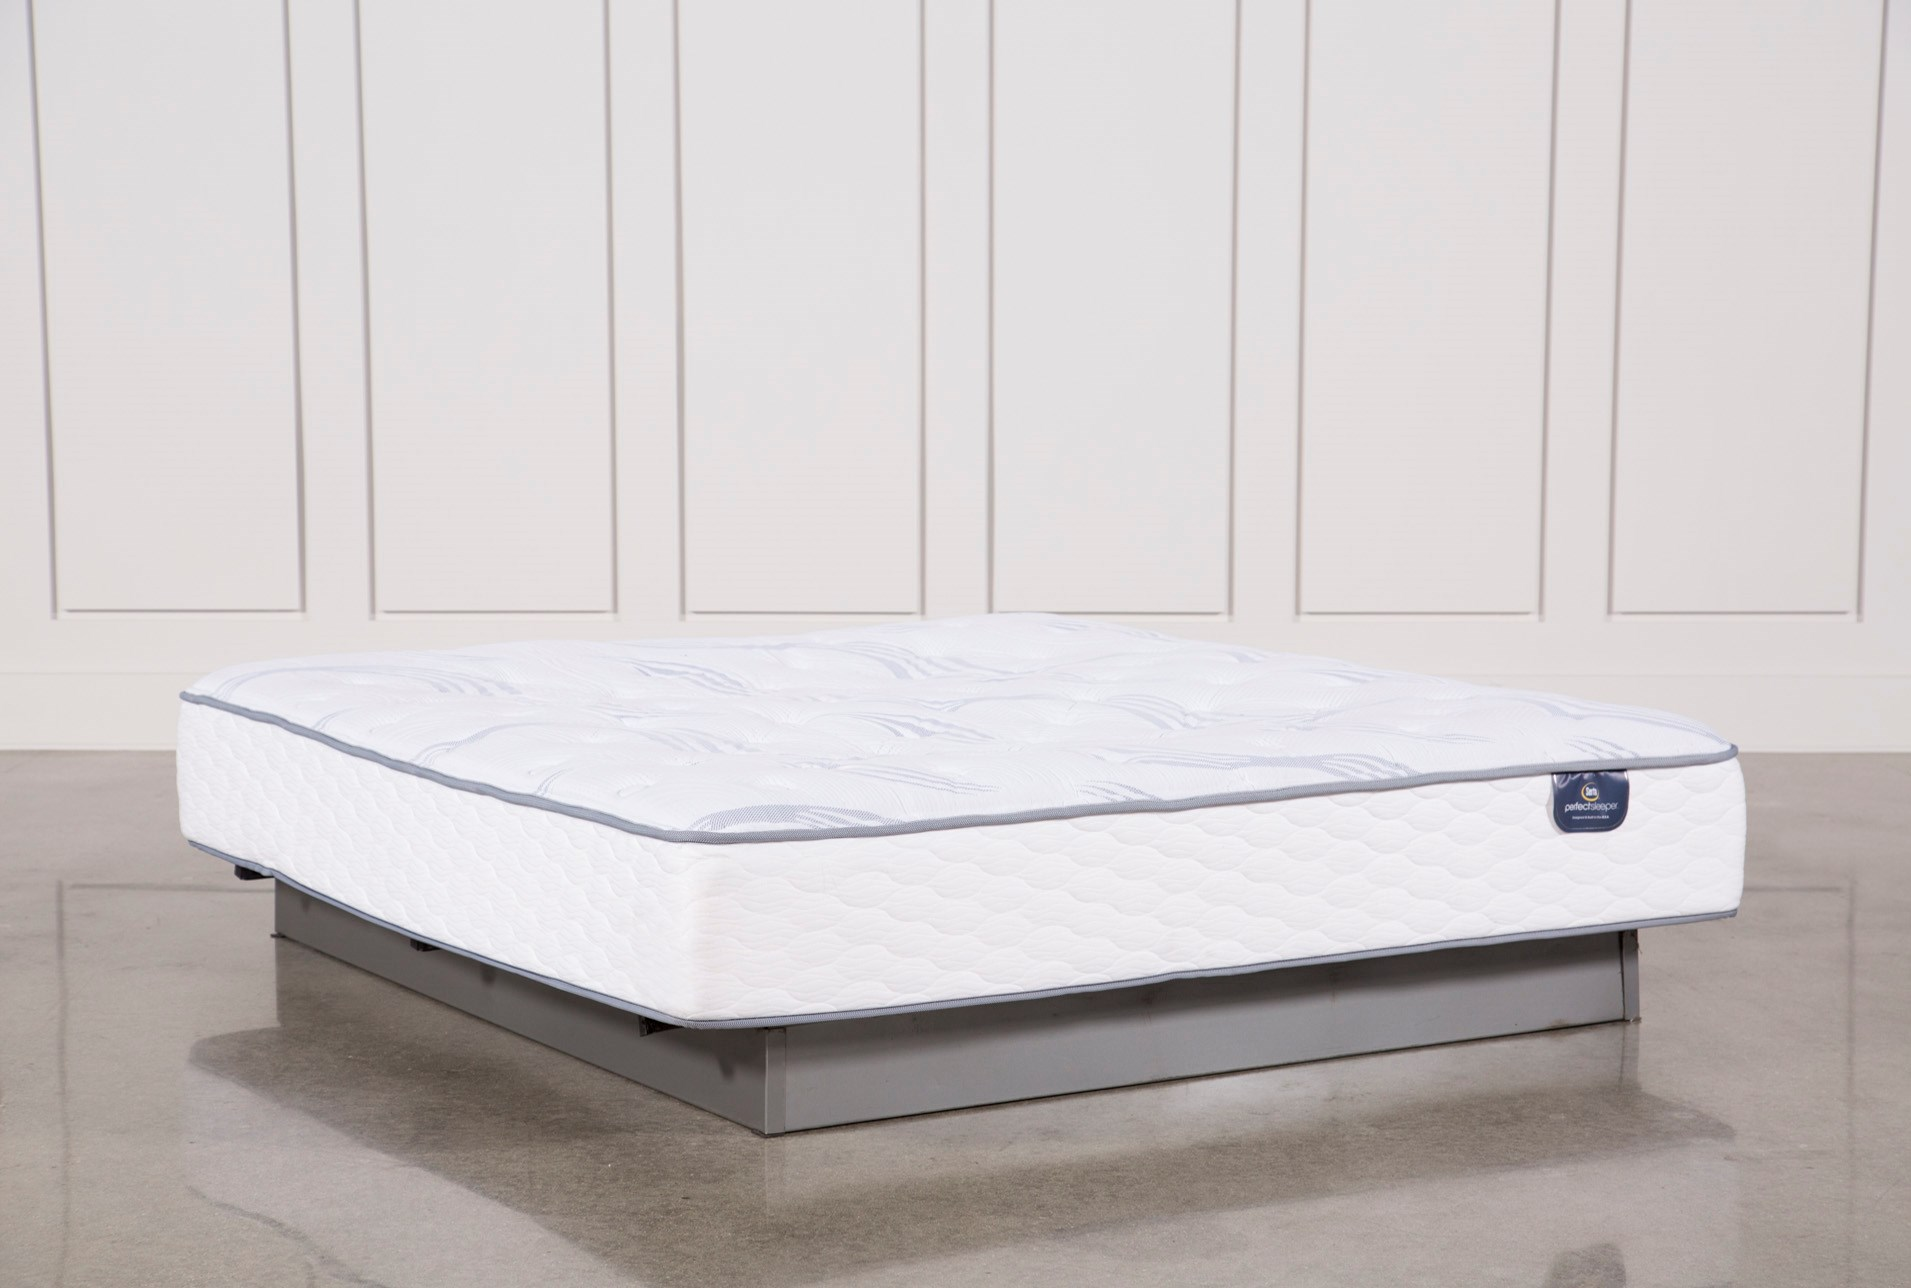 eastern complete beds collection product bedroom cambridge mattress king bed